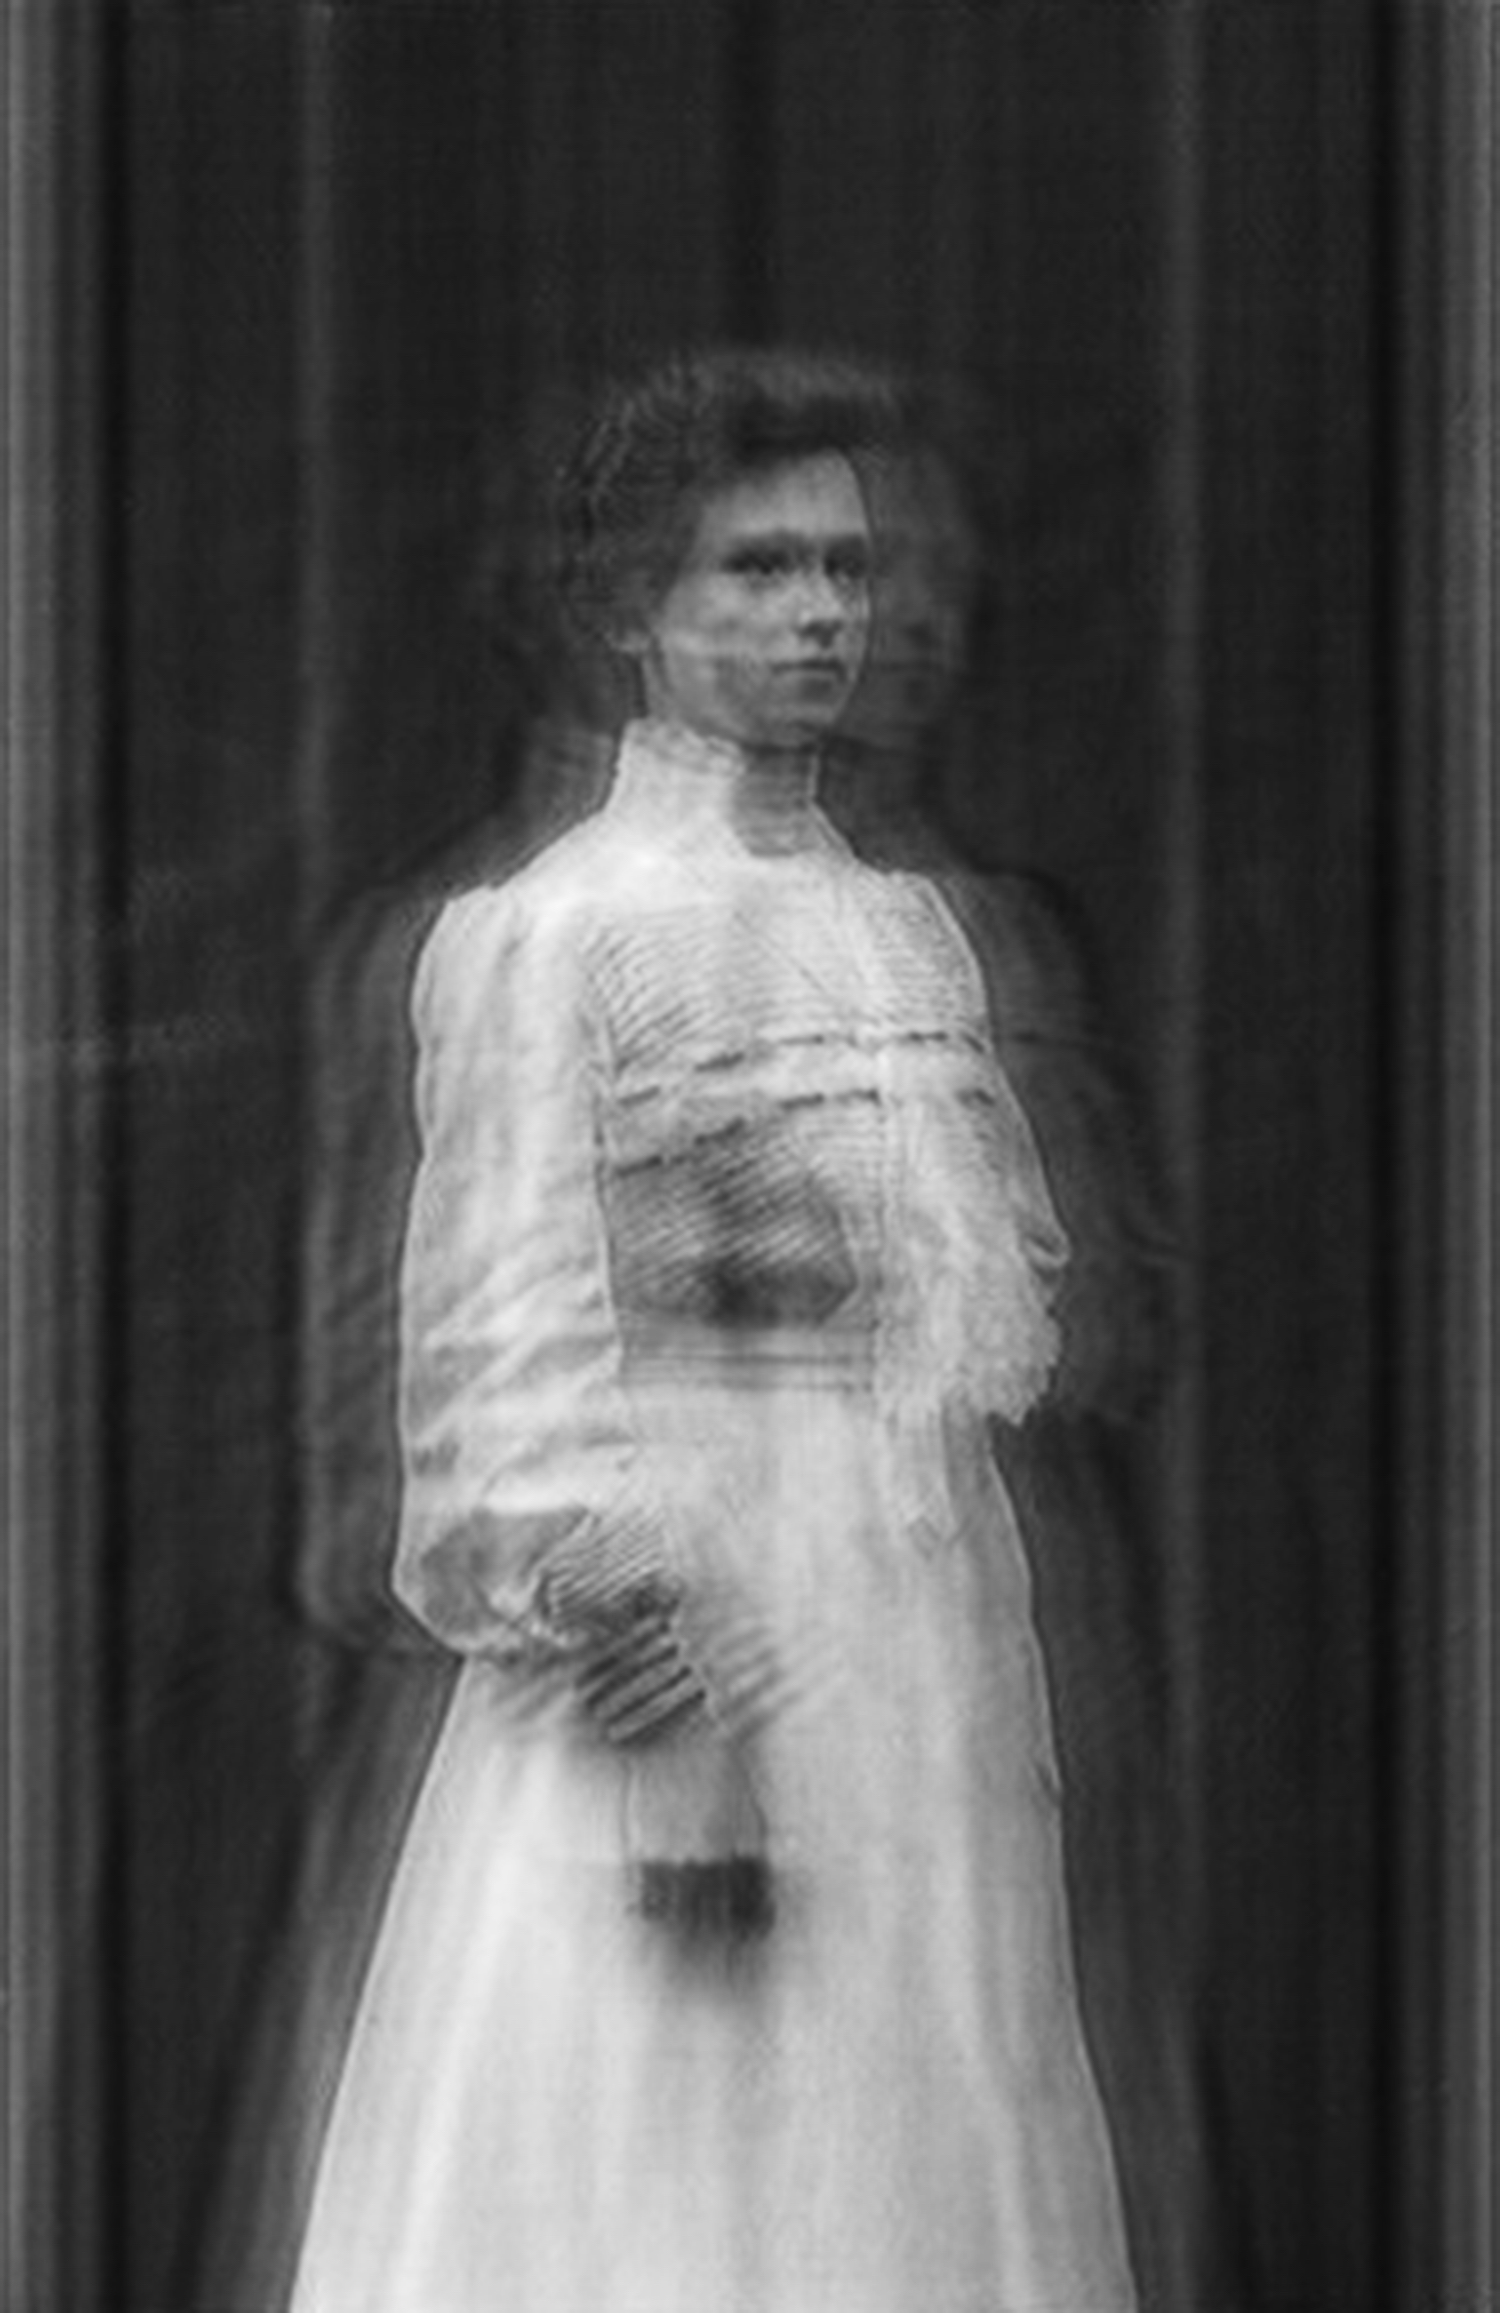 Ornella Fieres,  The Essence of a Moment/ Inverse Fourier #13 , 2019, C-Print in wooden frame, 18.11 x 25.19 inches framed (46 x 63.98 cm), Edition of 3, +1AP